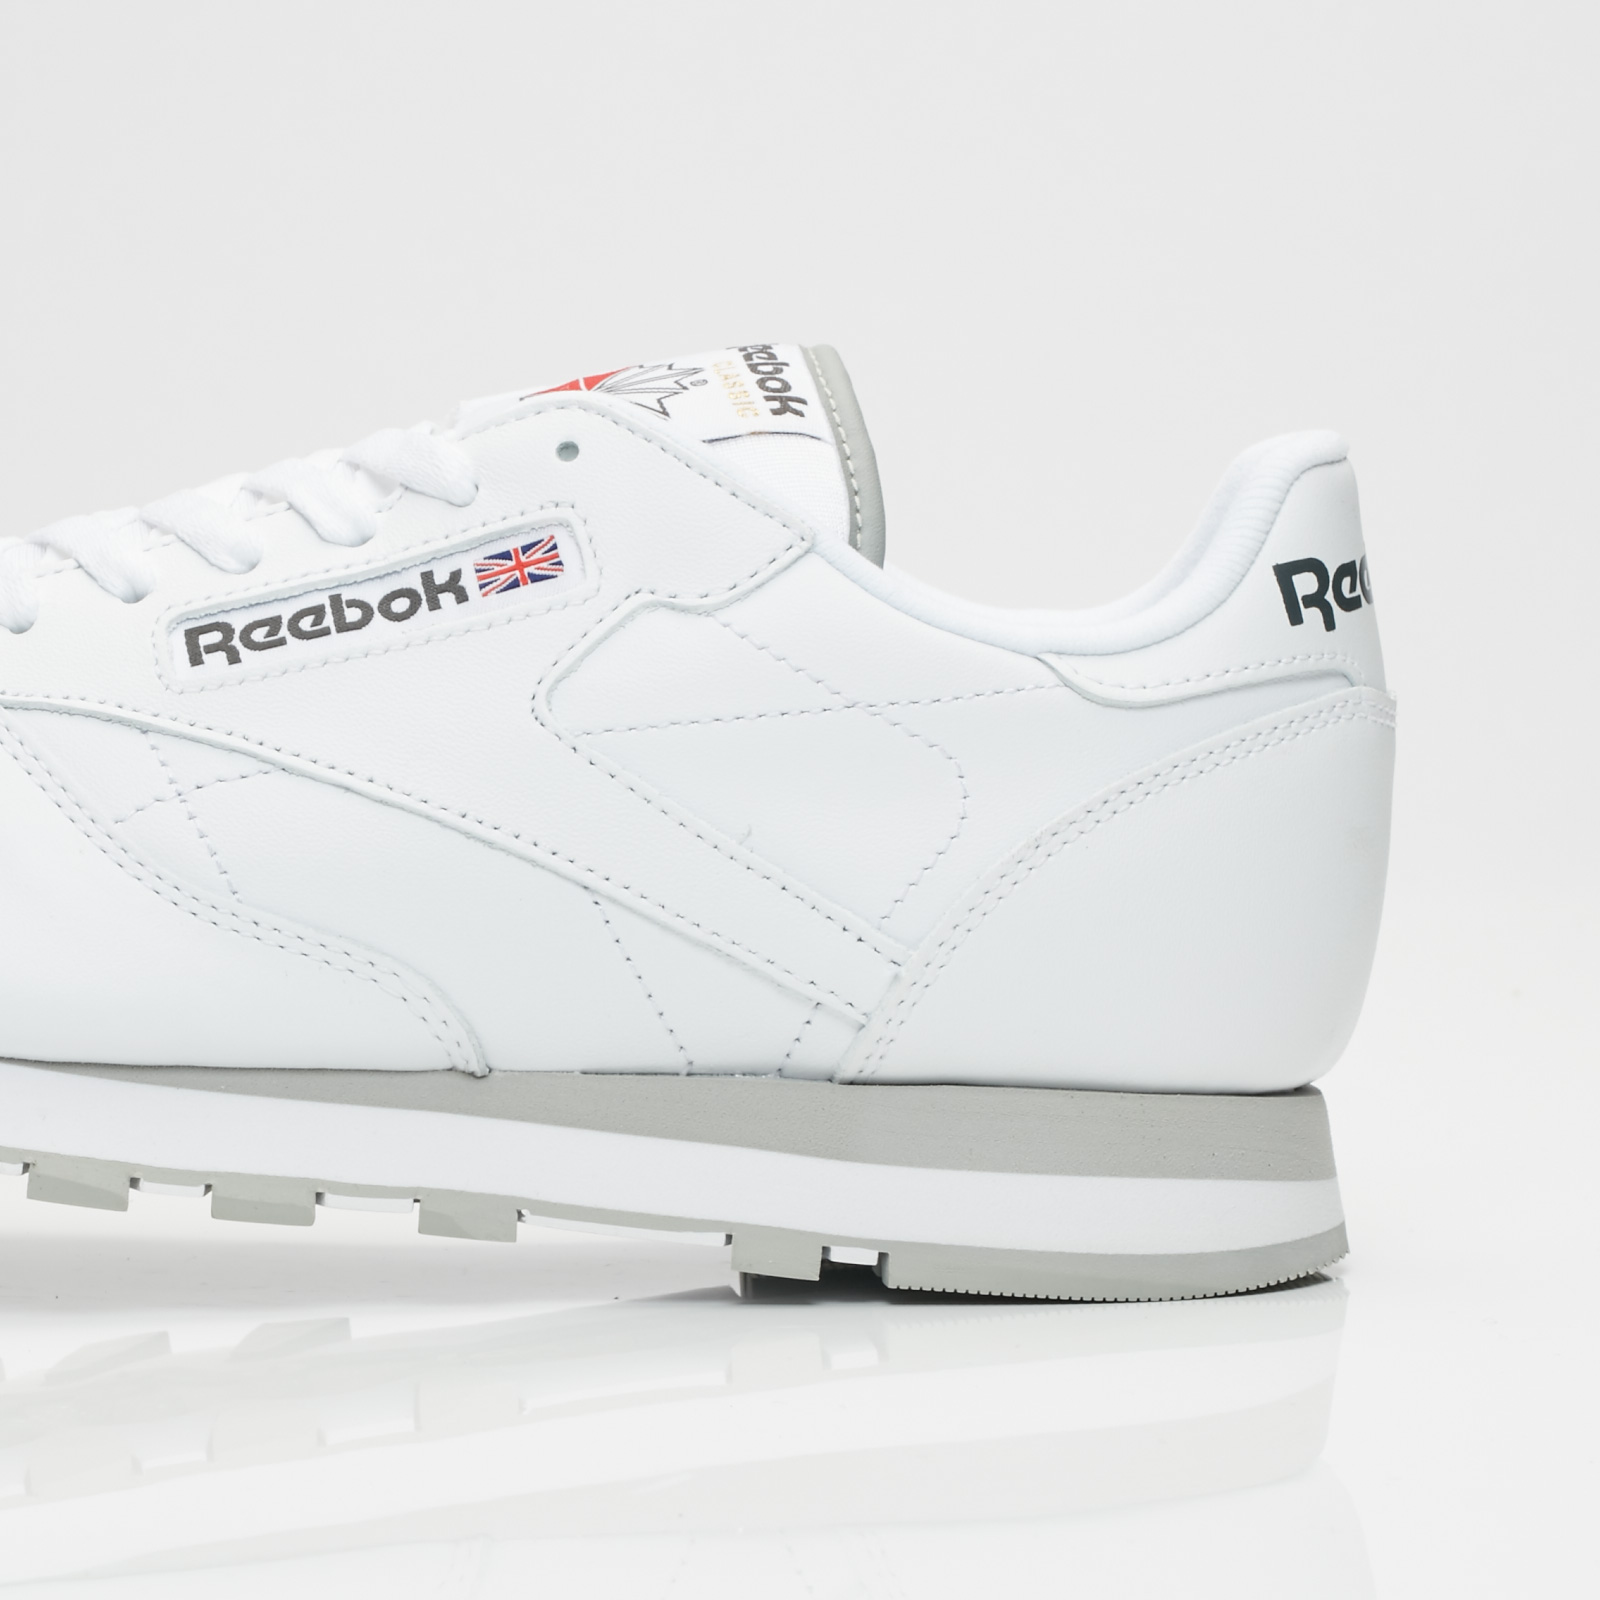 26214a7724a Reebok Classic Leather - 2214 - Sneakersnstuff